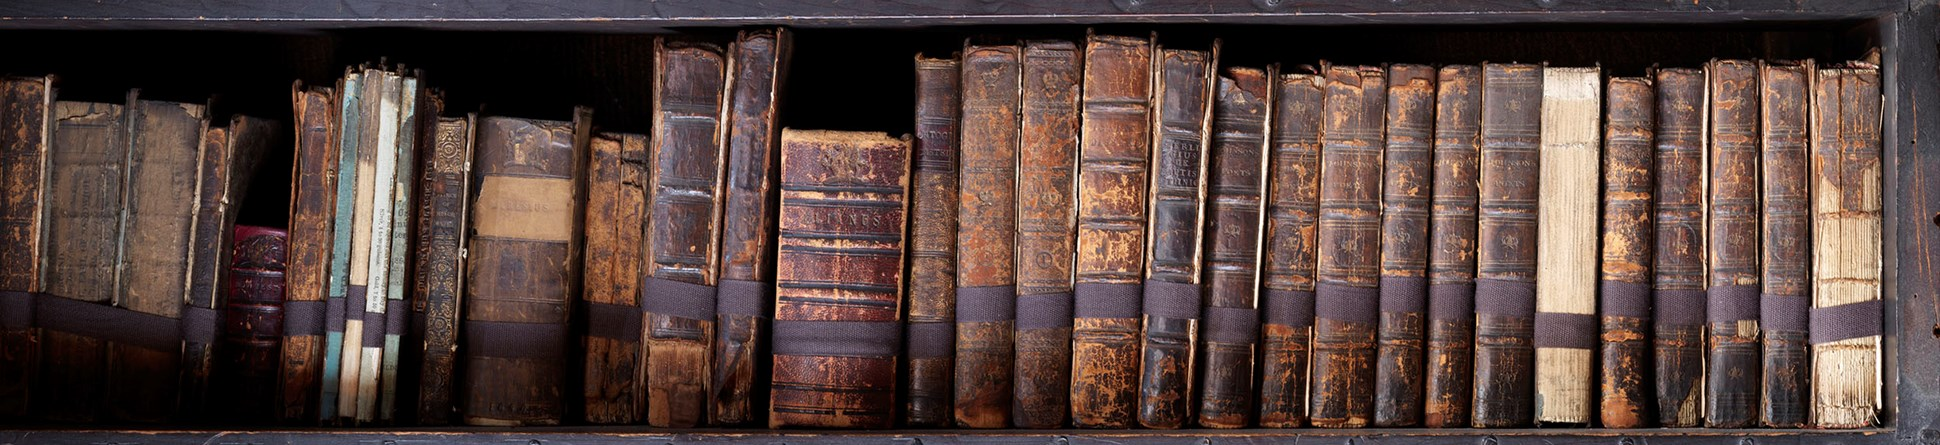 Old leather-bound books on three shelves of Chetham's Library, Long Millgate, Manchester.